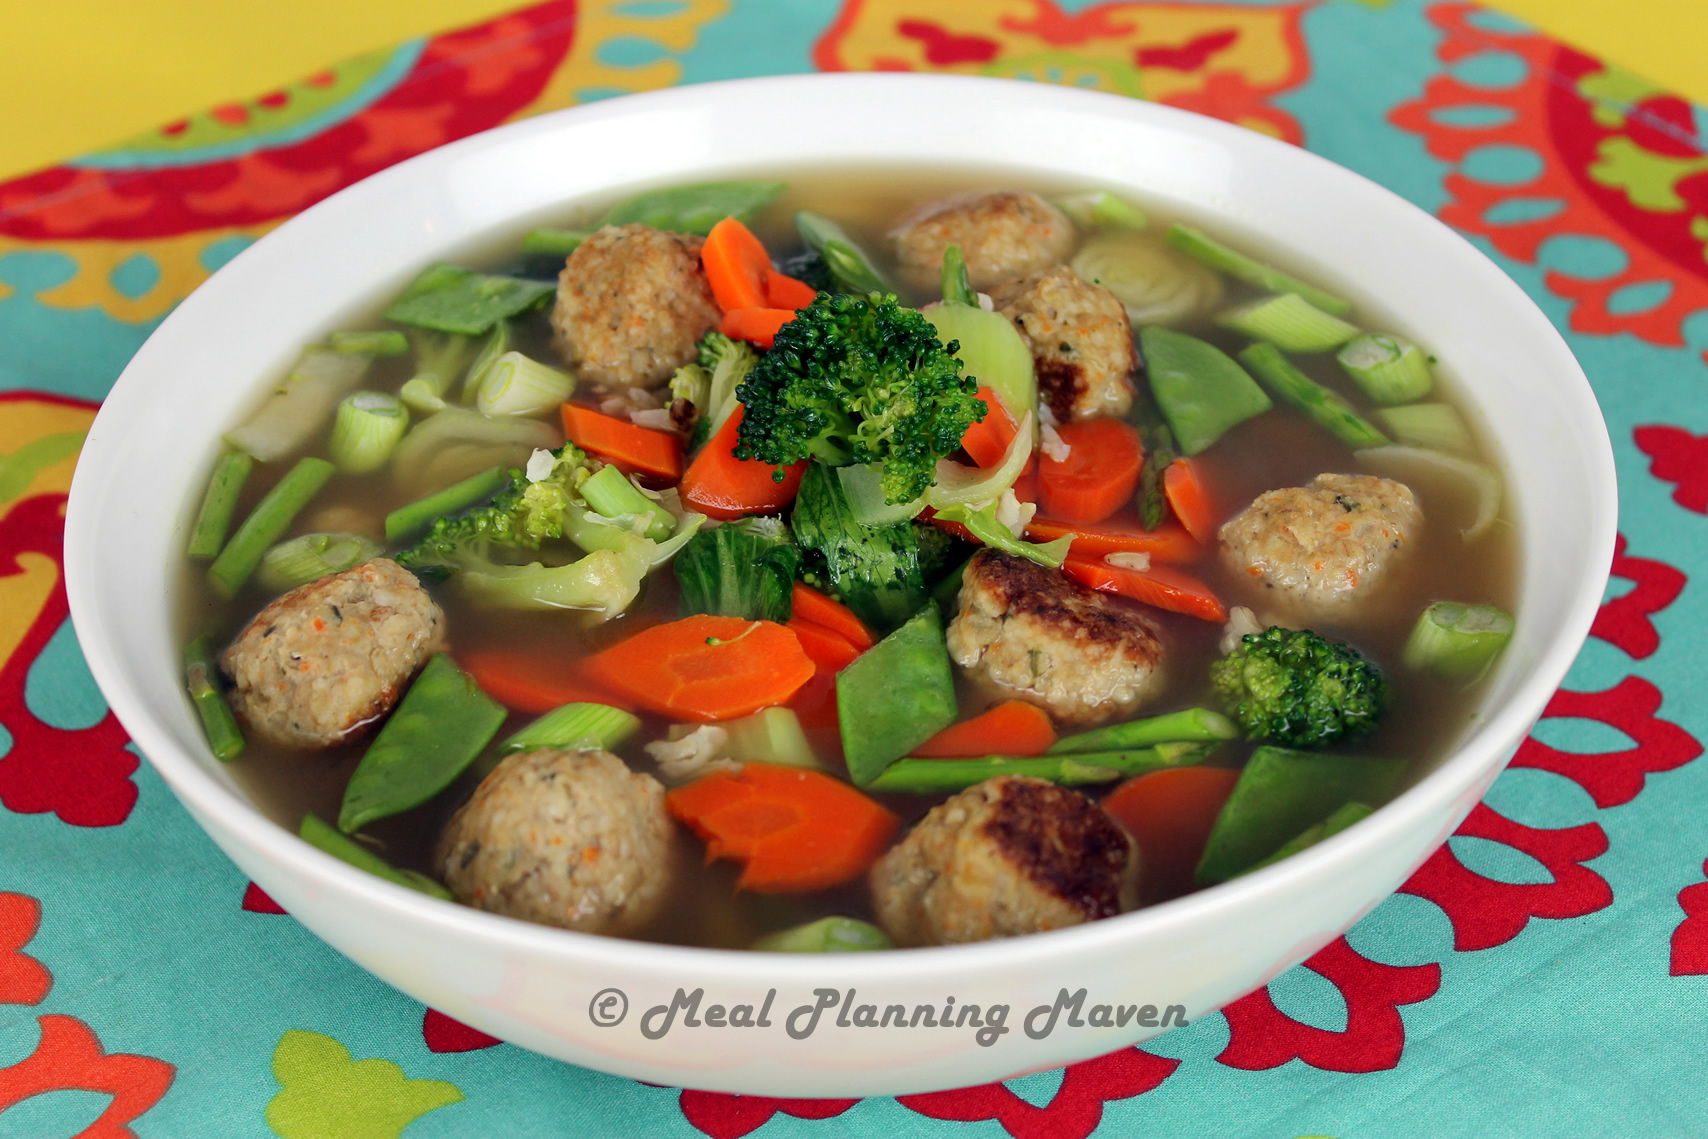 With this Chicken Meatball and Vegetable Noodle Soup recipe feel free to make changes. For instance you can change out the ditalini pasta with orzo, or you can add spinach or kale to it. You could even take it a step further and do all vegetables with no noodles.